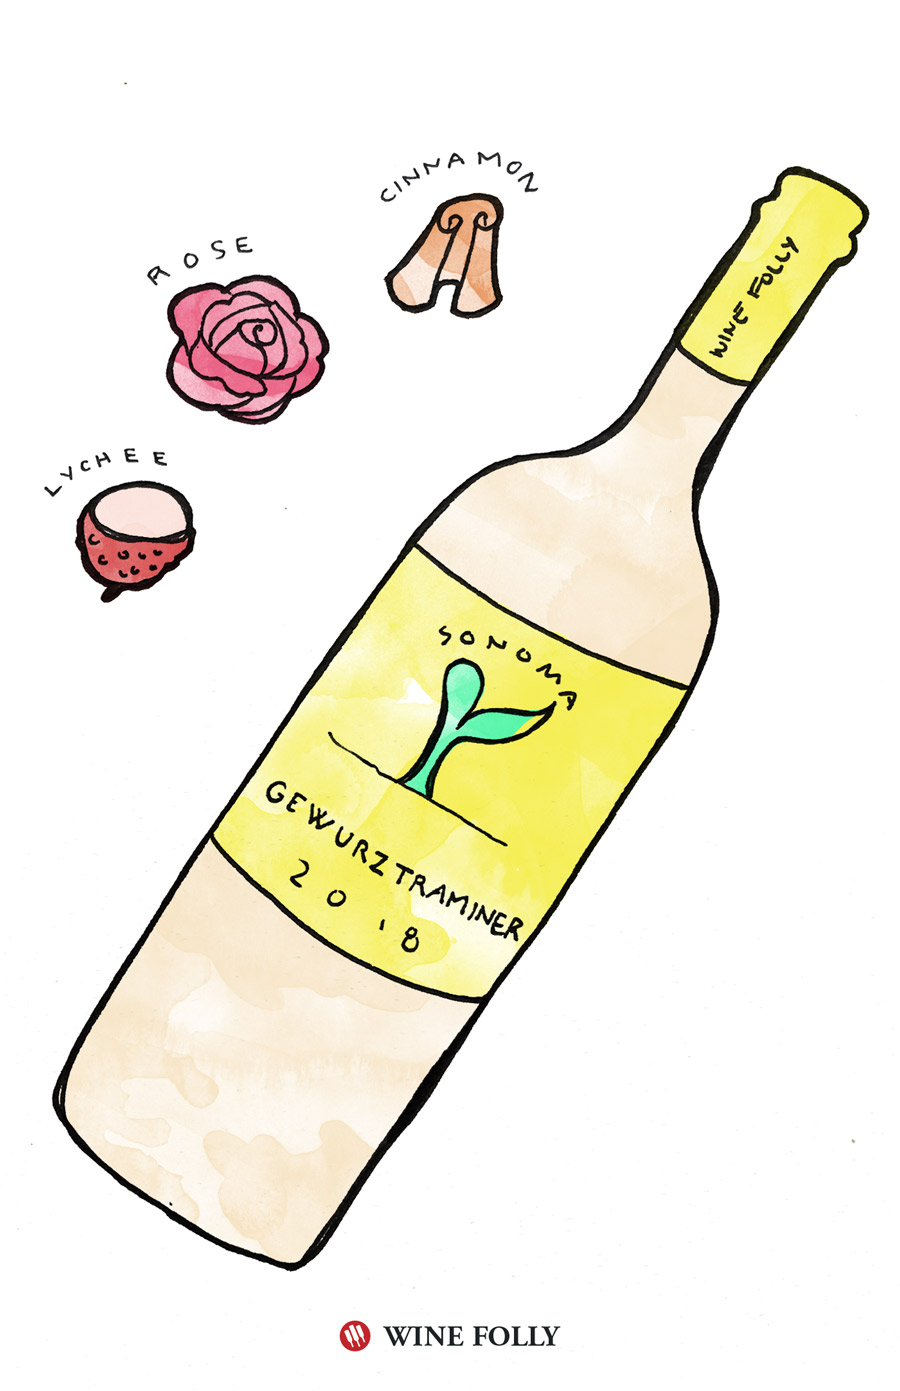 Gewurztraminer Tasting Notes Illustration by Wine Folly